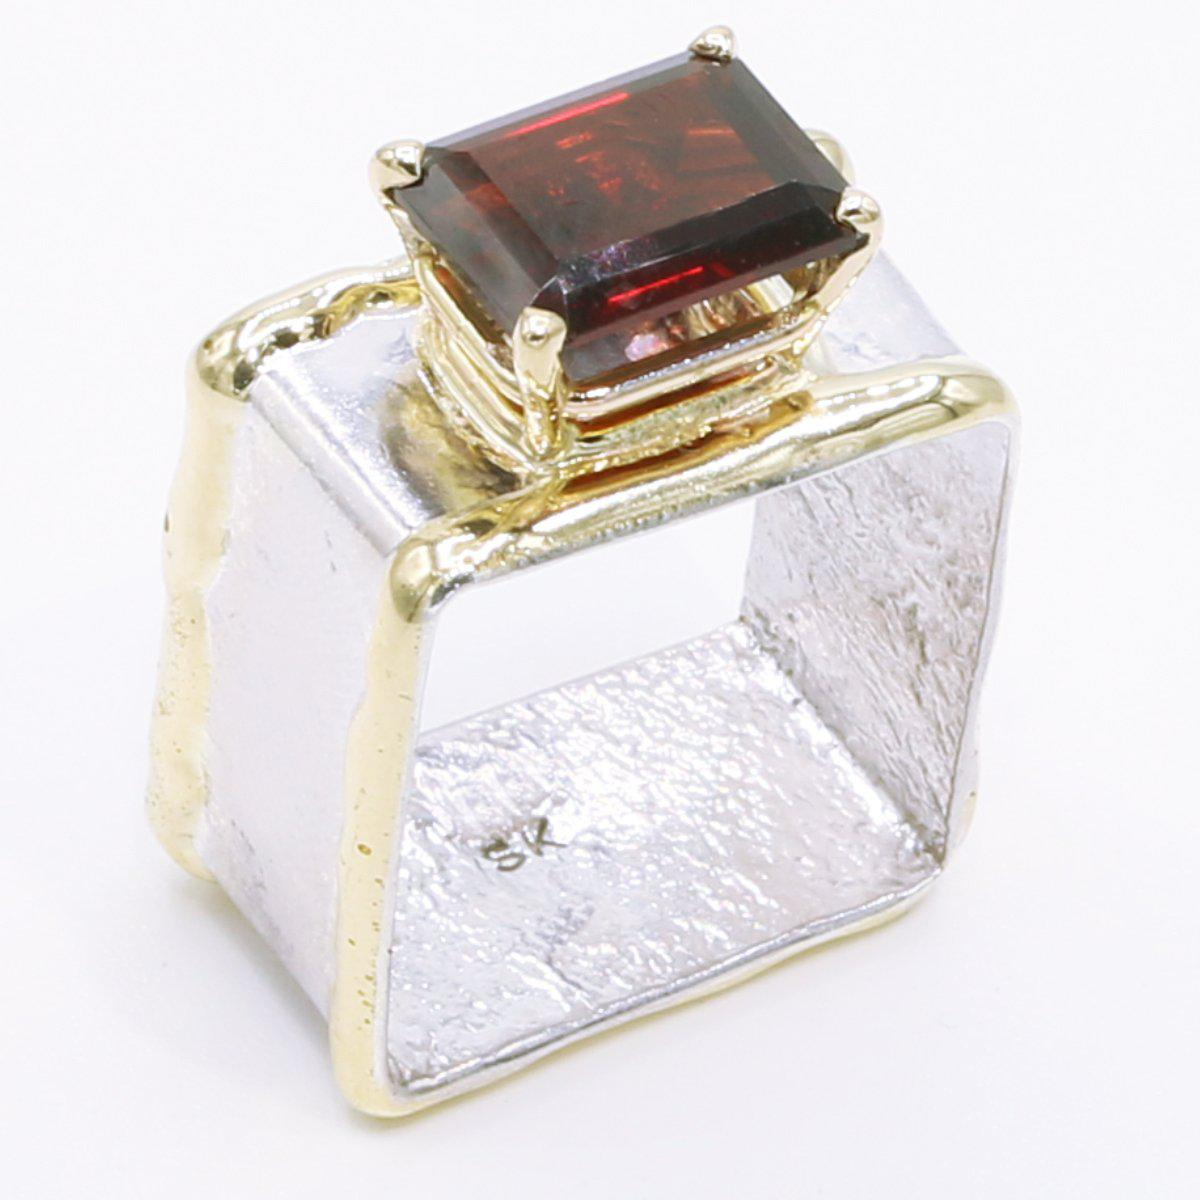 14K Gold & Crystalline Silver Garnet Ring - 34503-Fusion Designs-Renee Taylor Gallery